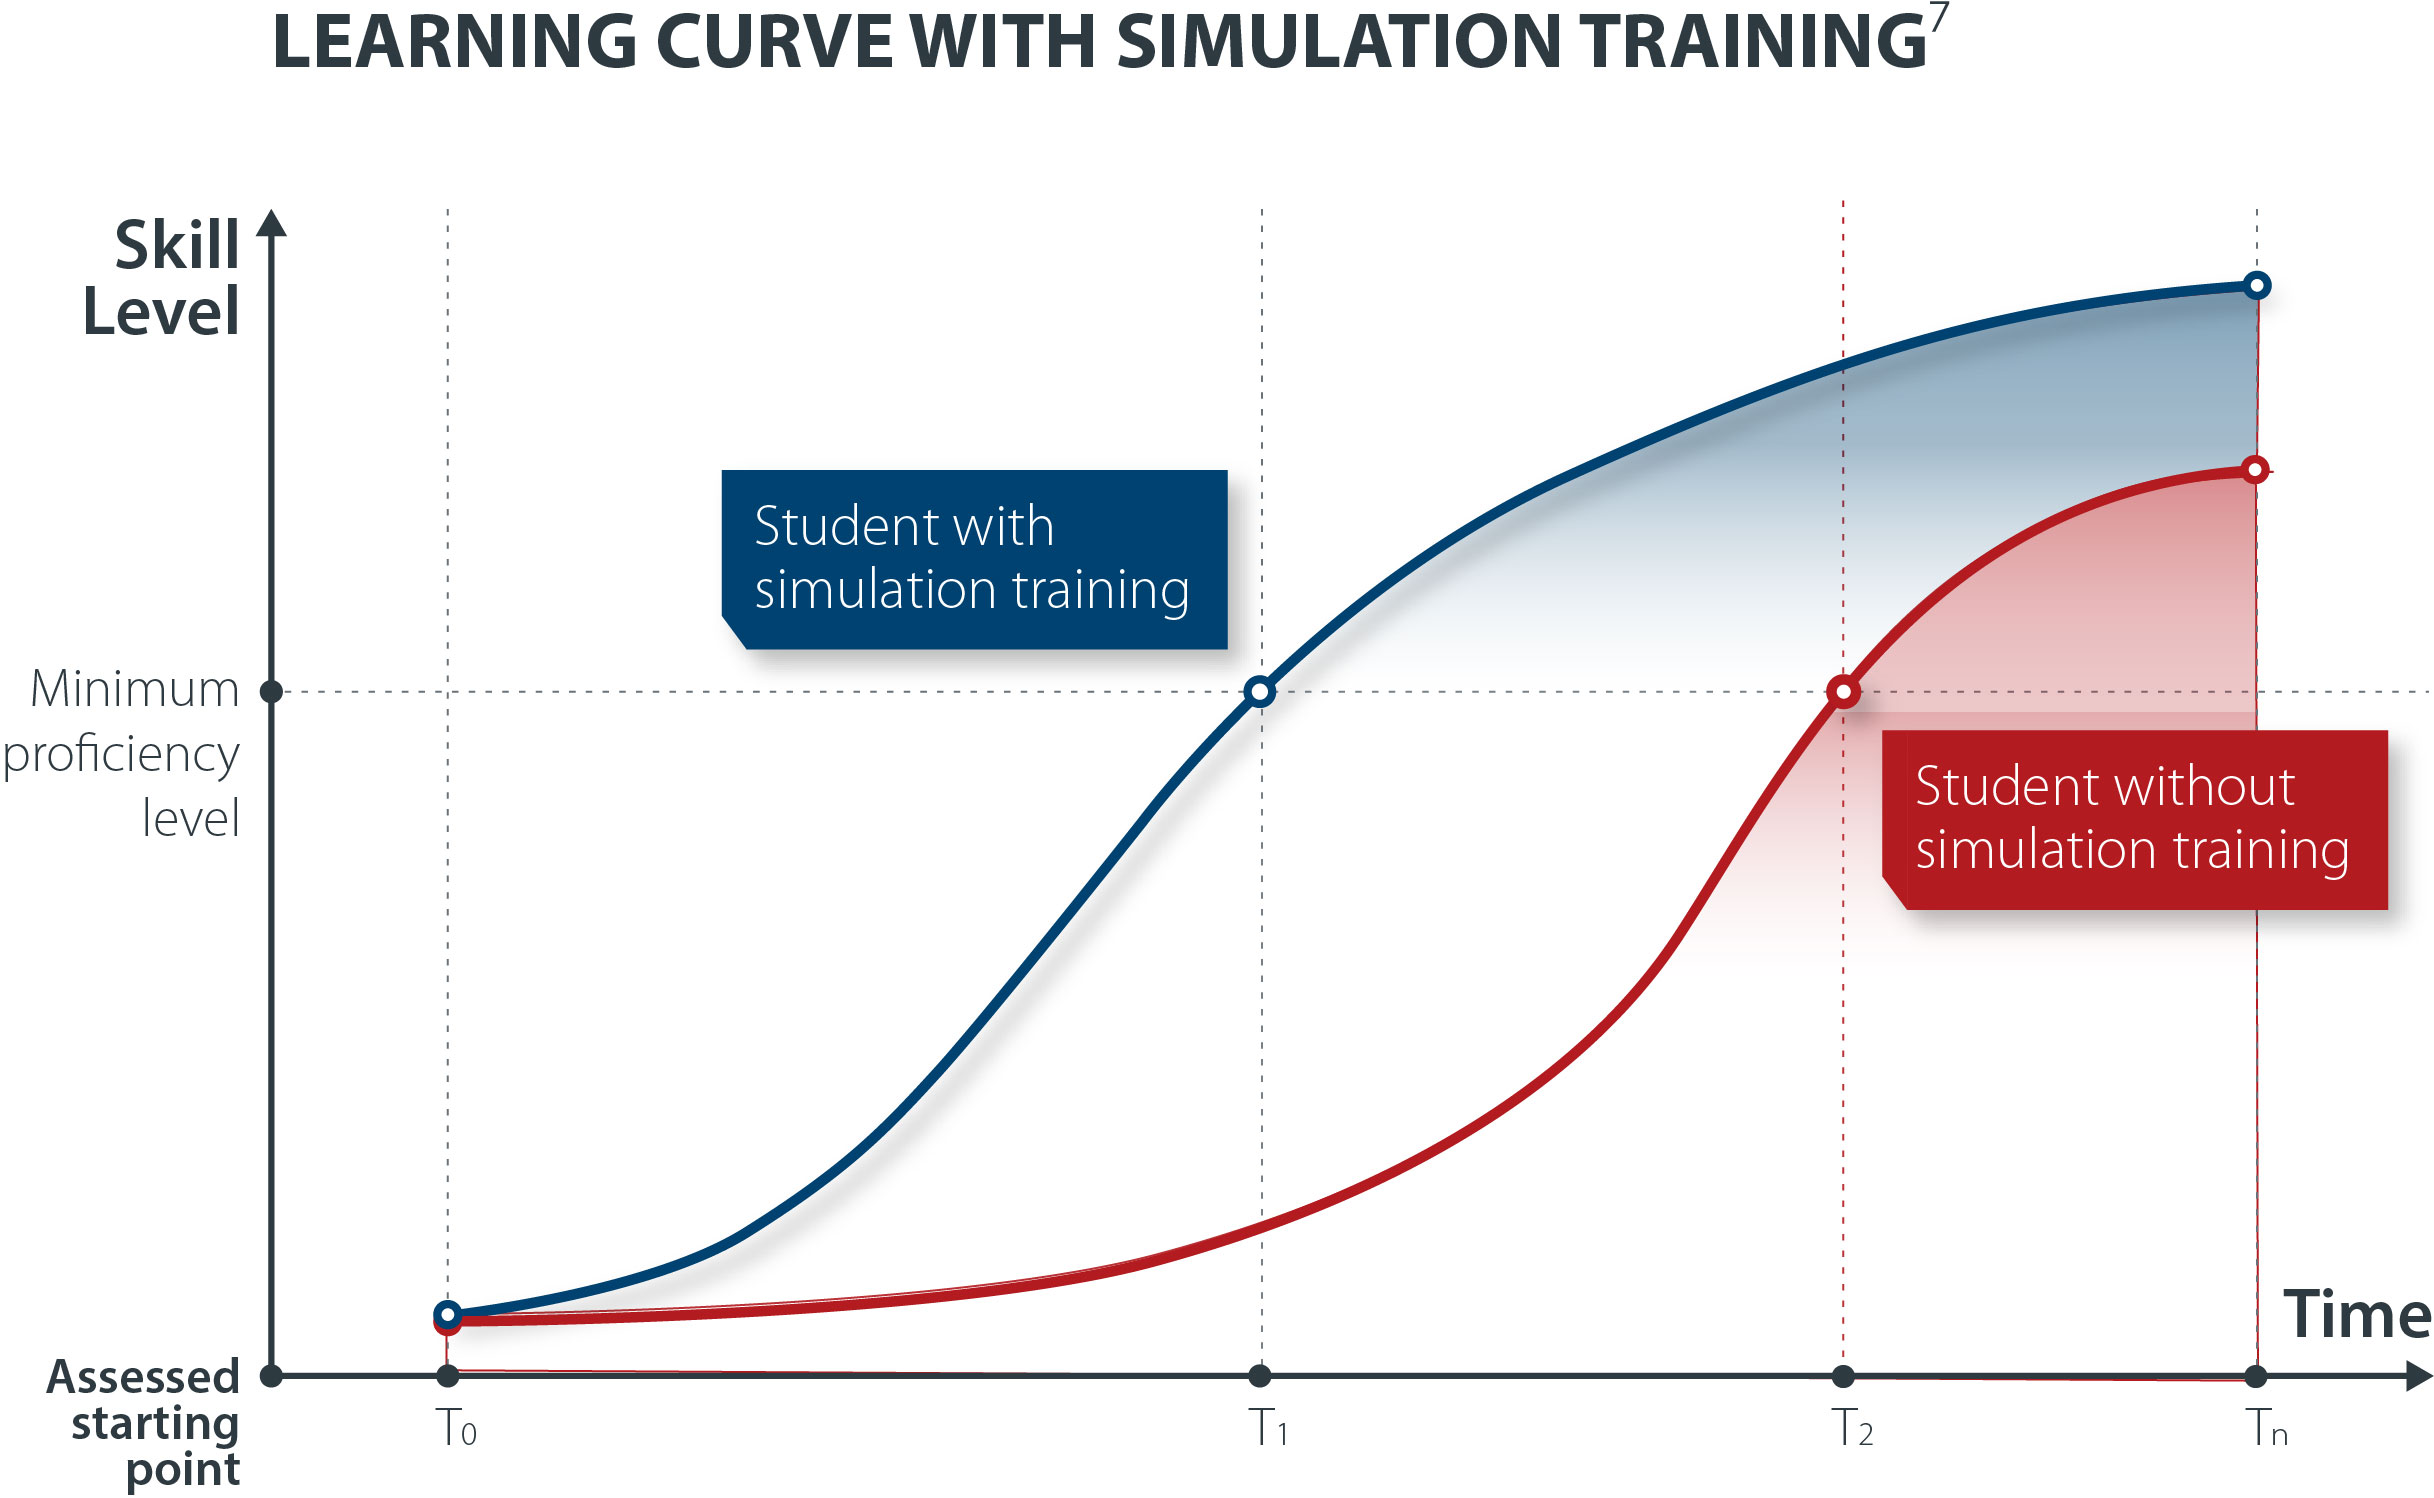 VirtaMed - Learning Curve with Simulation Training Final 190227